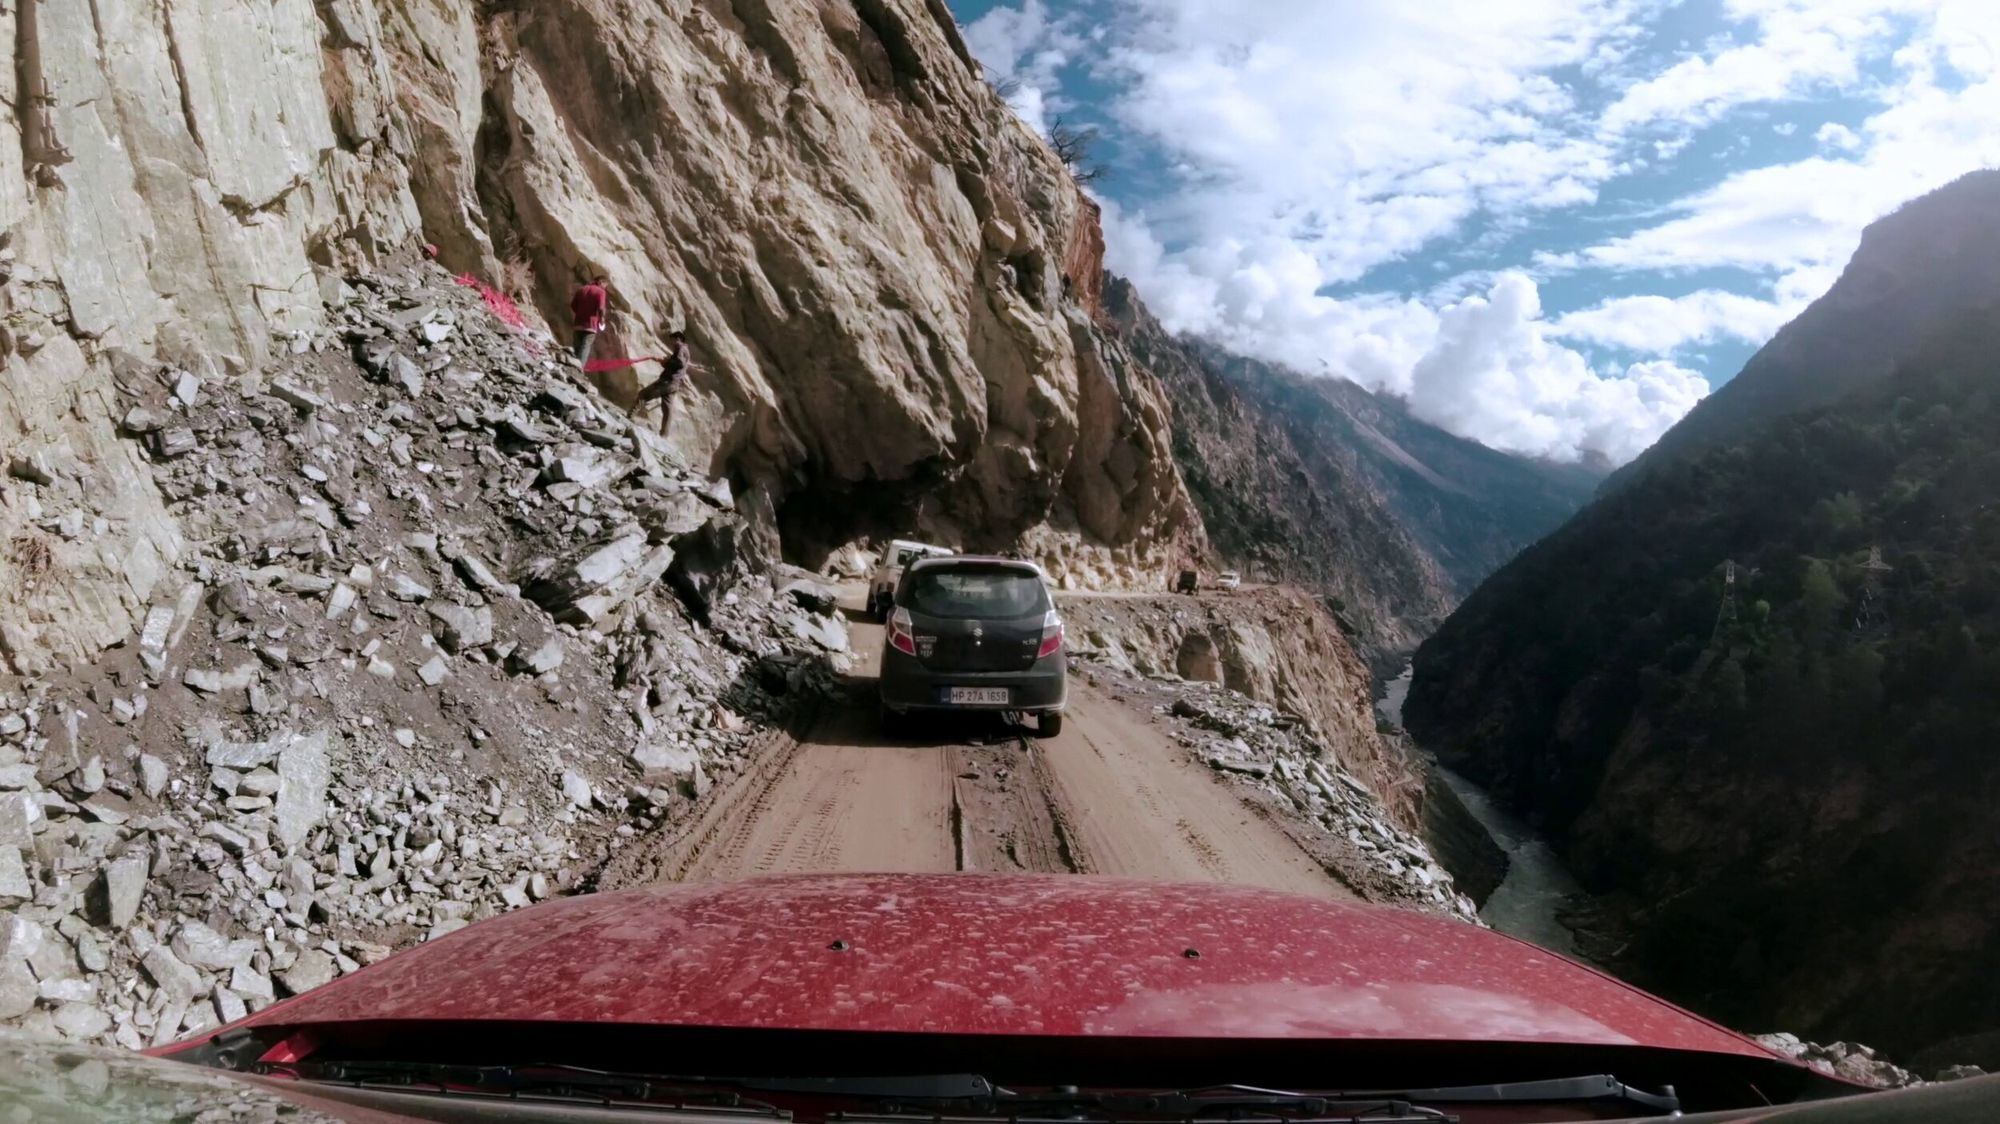 The thrill of driving on narrow roads